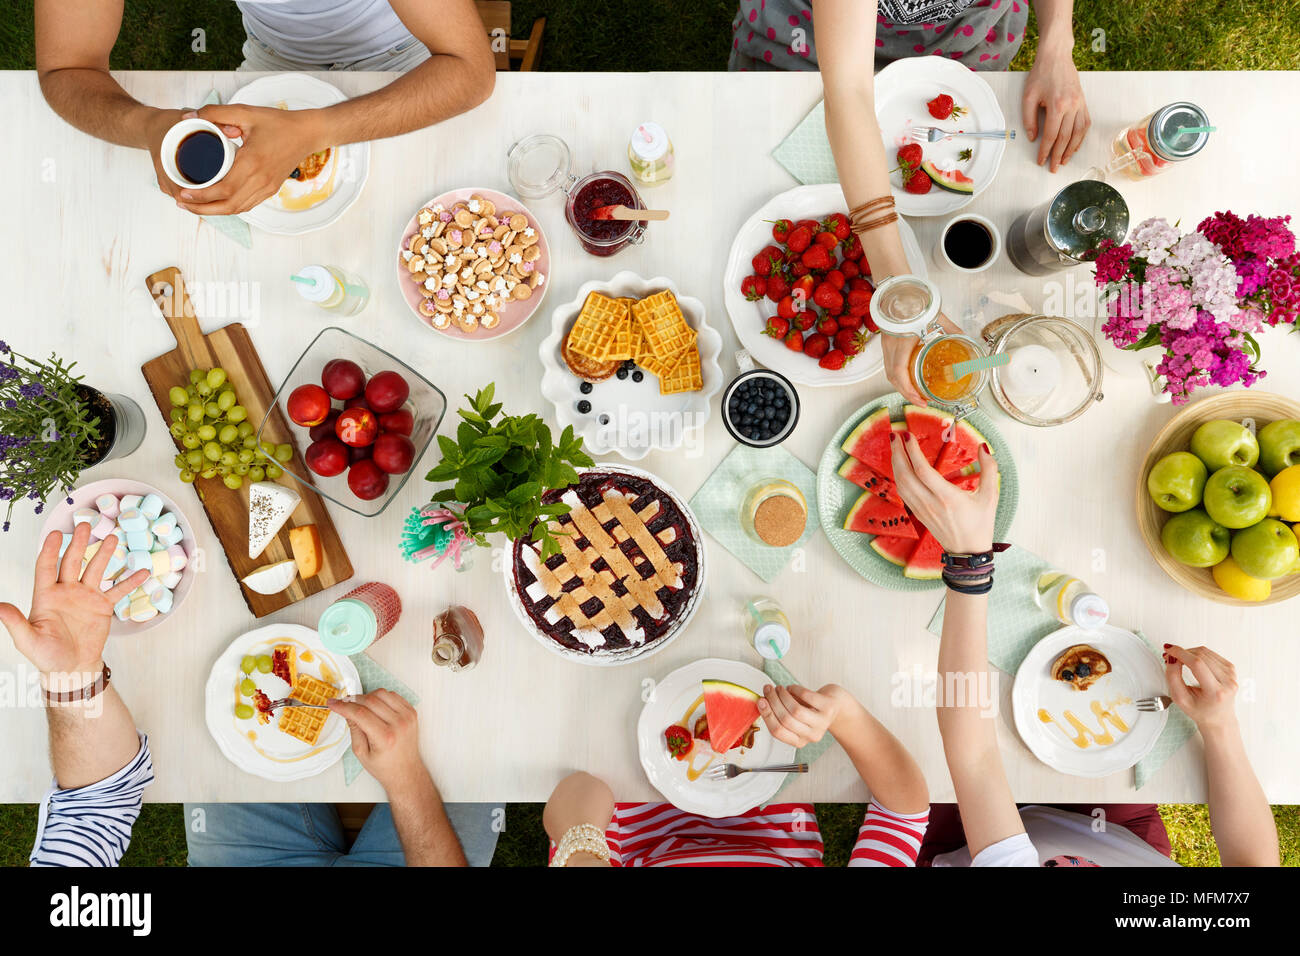 Students eating a healthy meal outdoors on a white table and having a good time - Stock Image